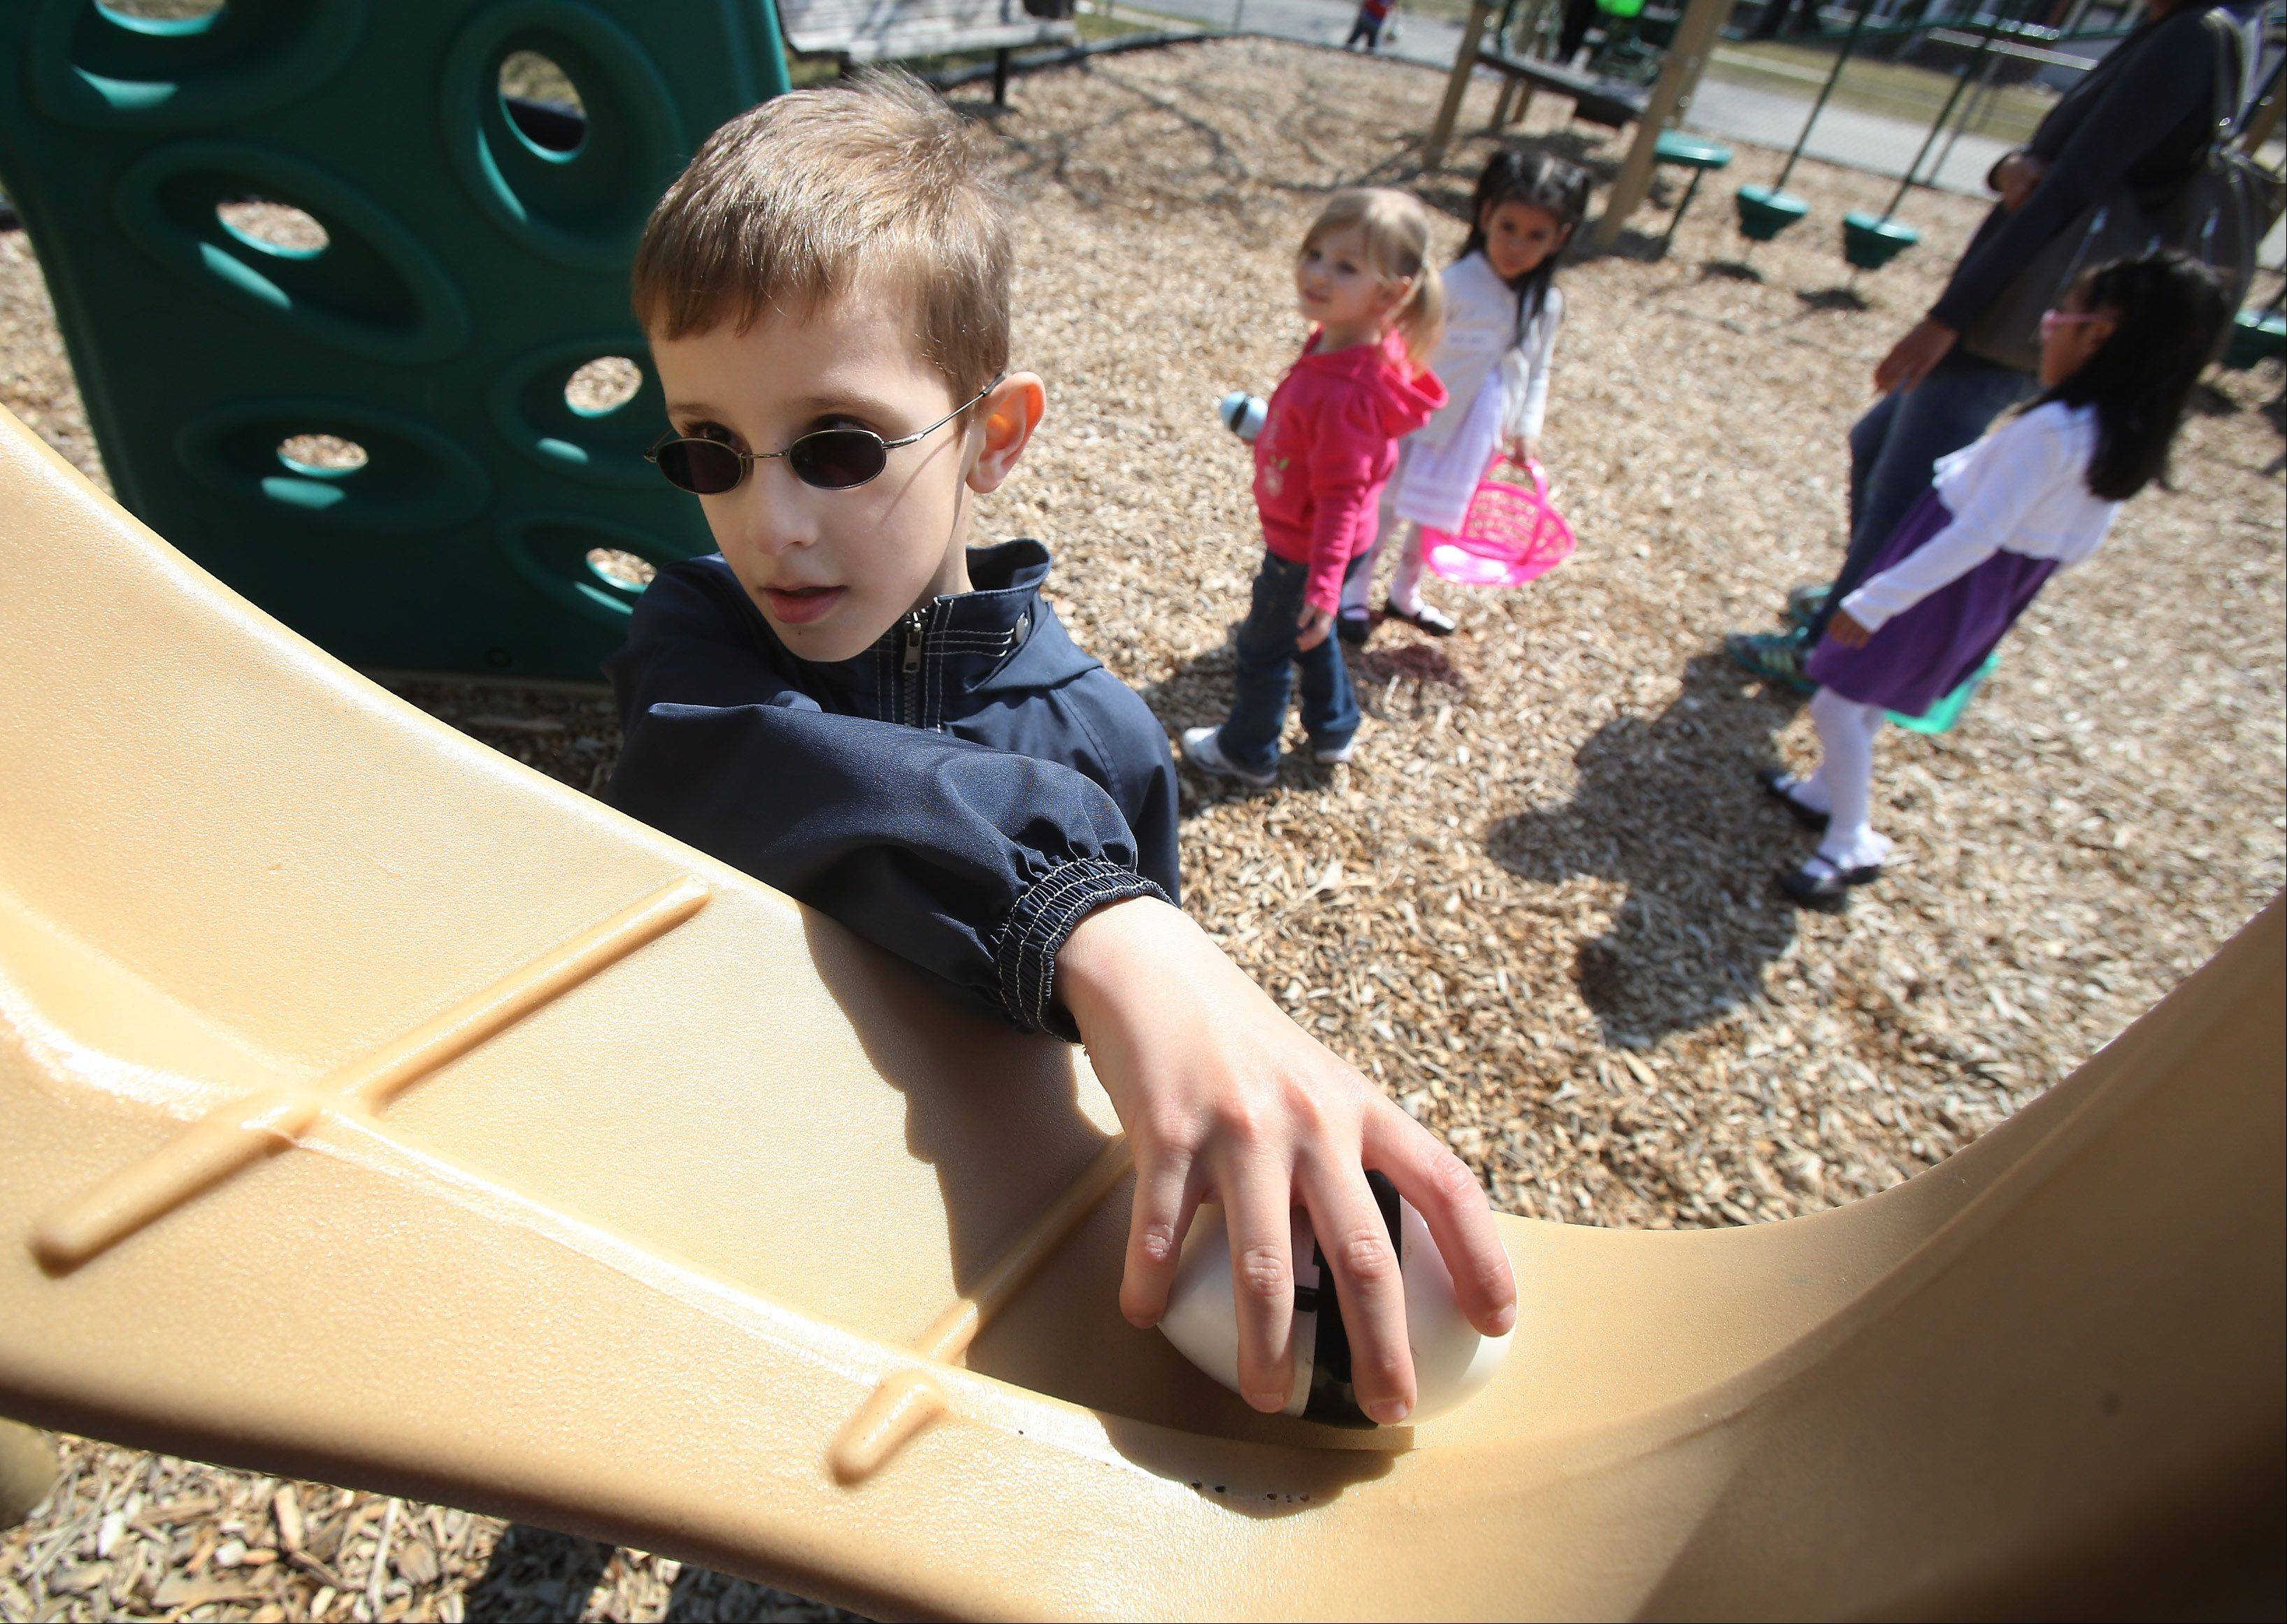 Angel Kaloyanov, 8, of Arlington Heights, finds a beeping egg in the playground during the Mount Prospect Lions Club Easter Egg Hunt Sunday at the Westbrook School at the Gillet Center. Visually and physically impaired children looked for beeping eggs to exchange for prizes.